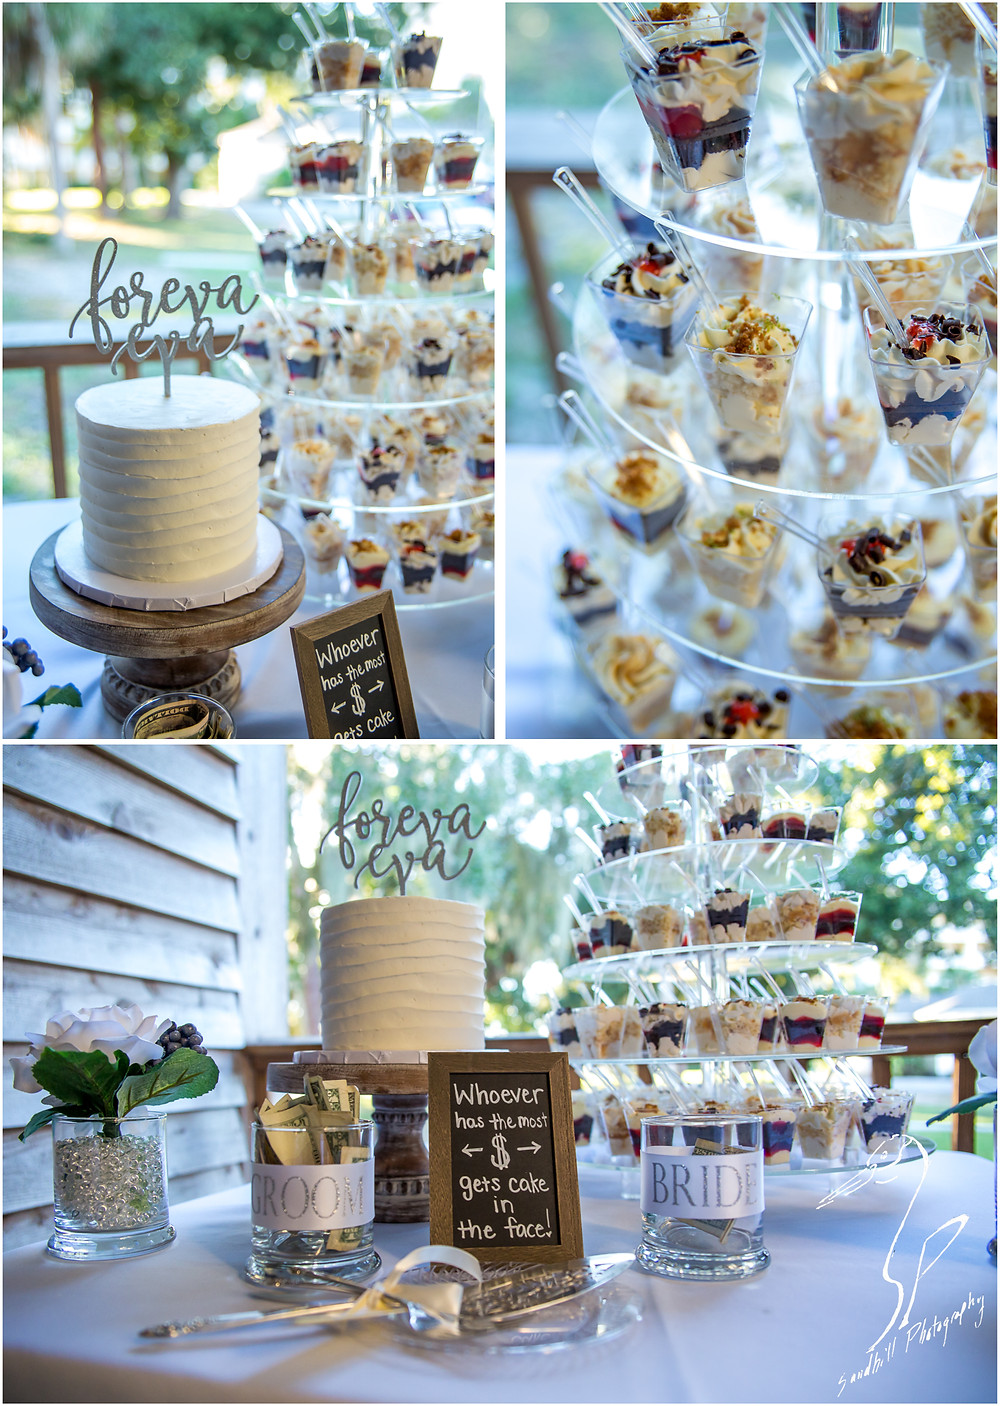 Sarasota Wedding Photography wedding cake and dessert tower from Cupcake Delights on Anna Maria Island